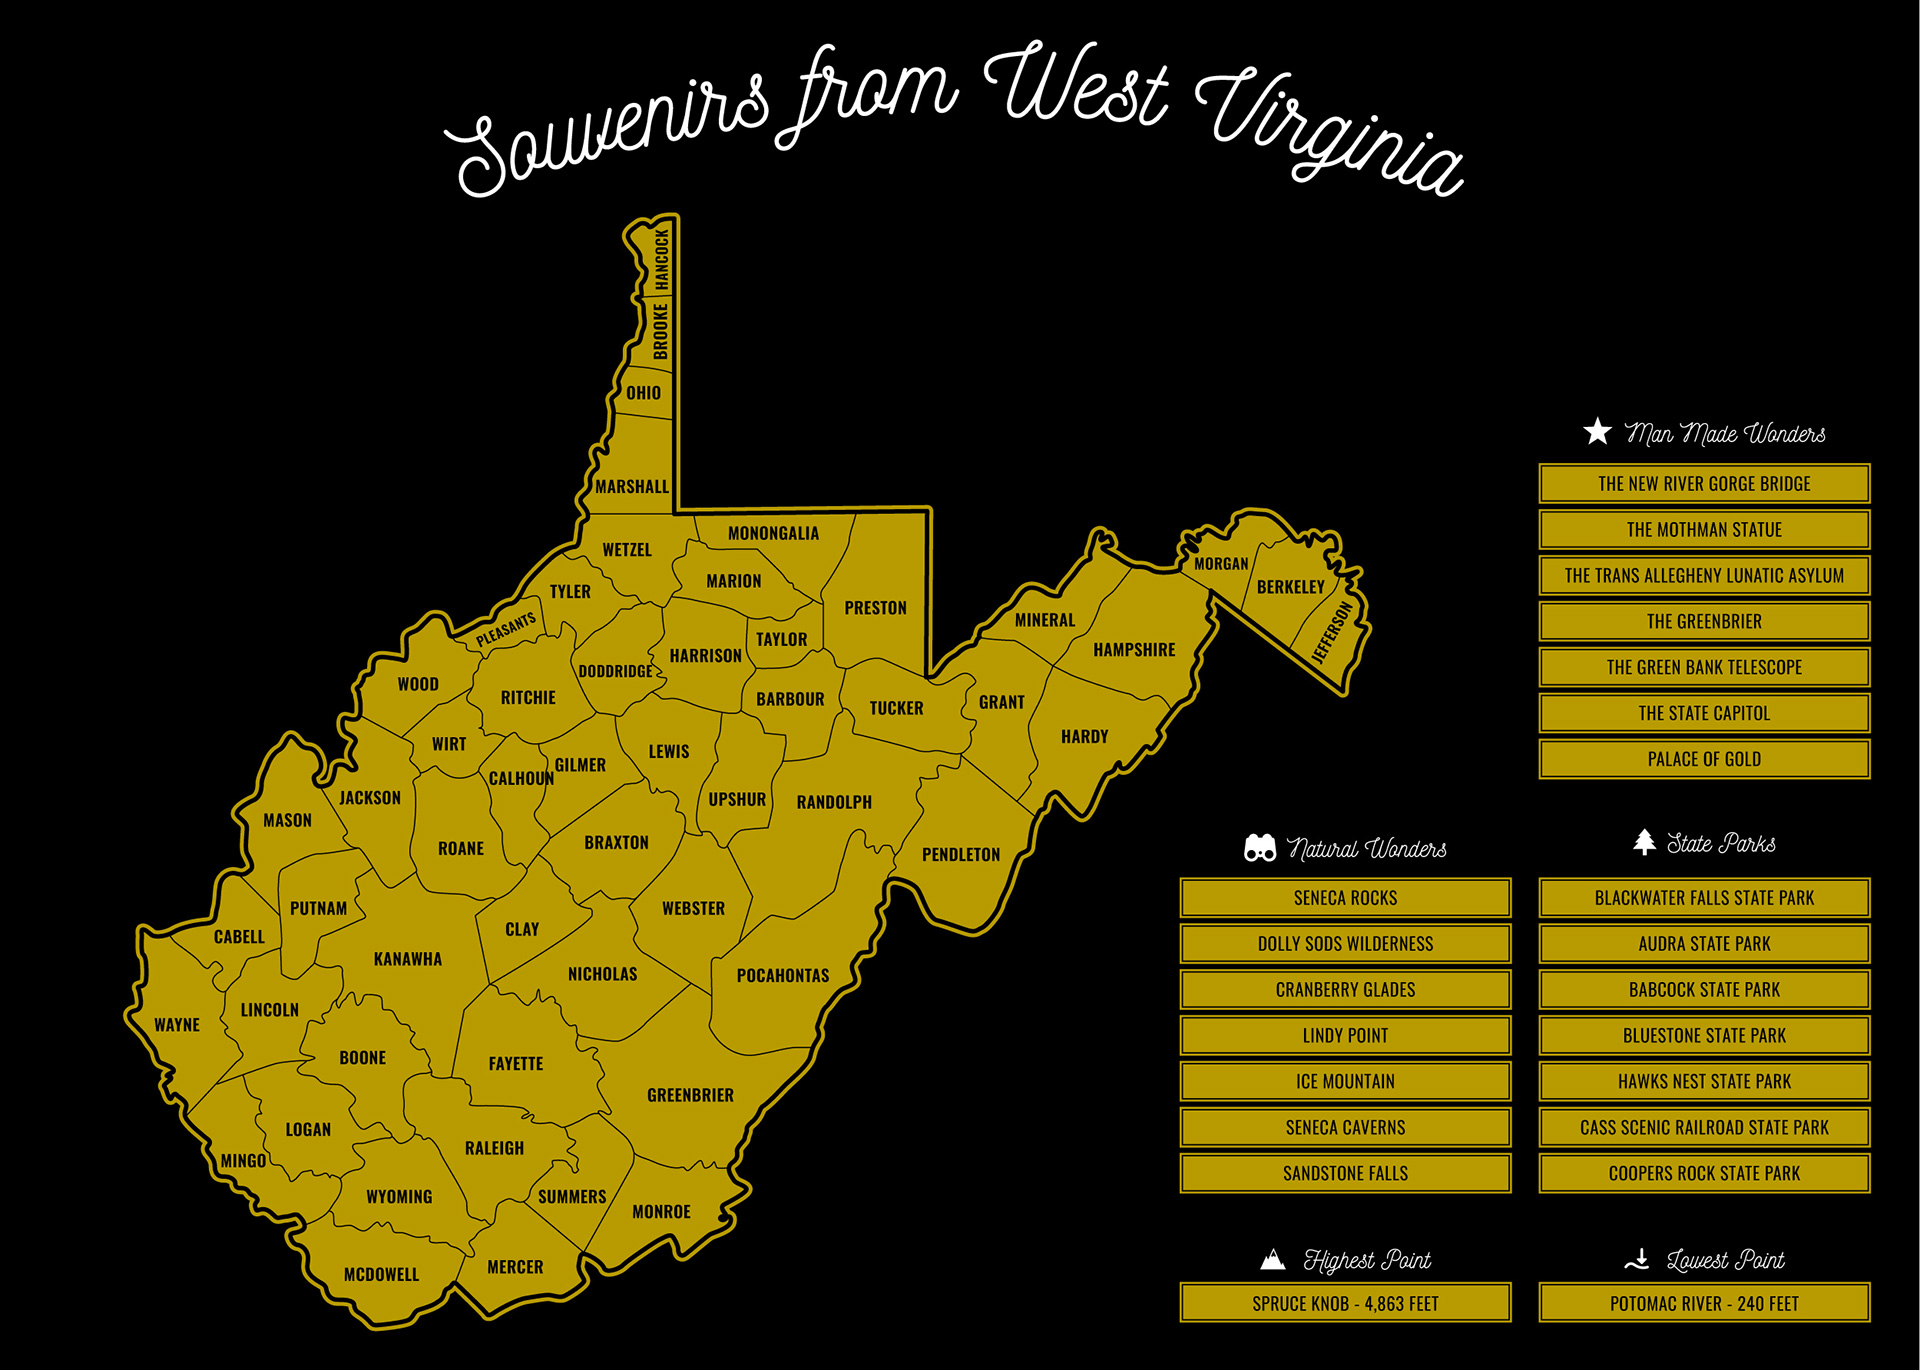 West Virginia map before being revealed